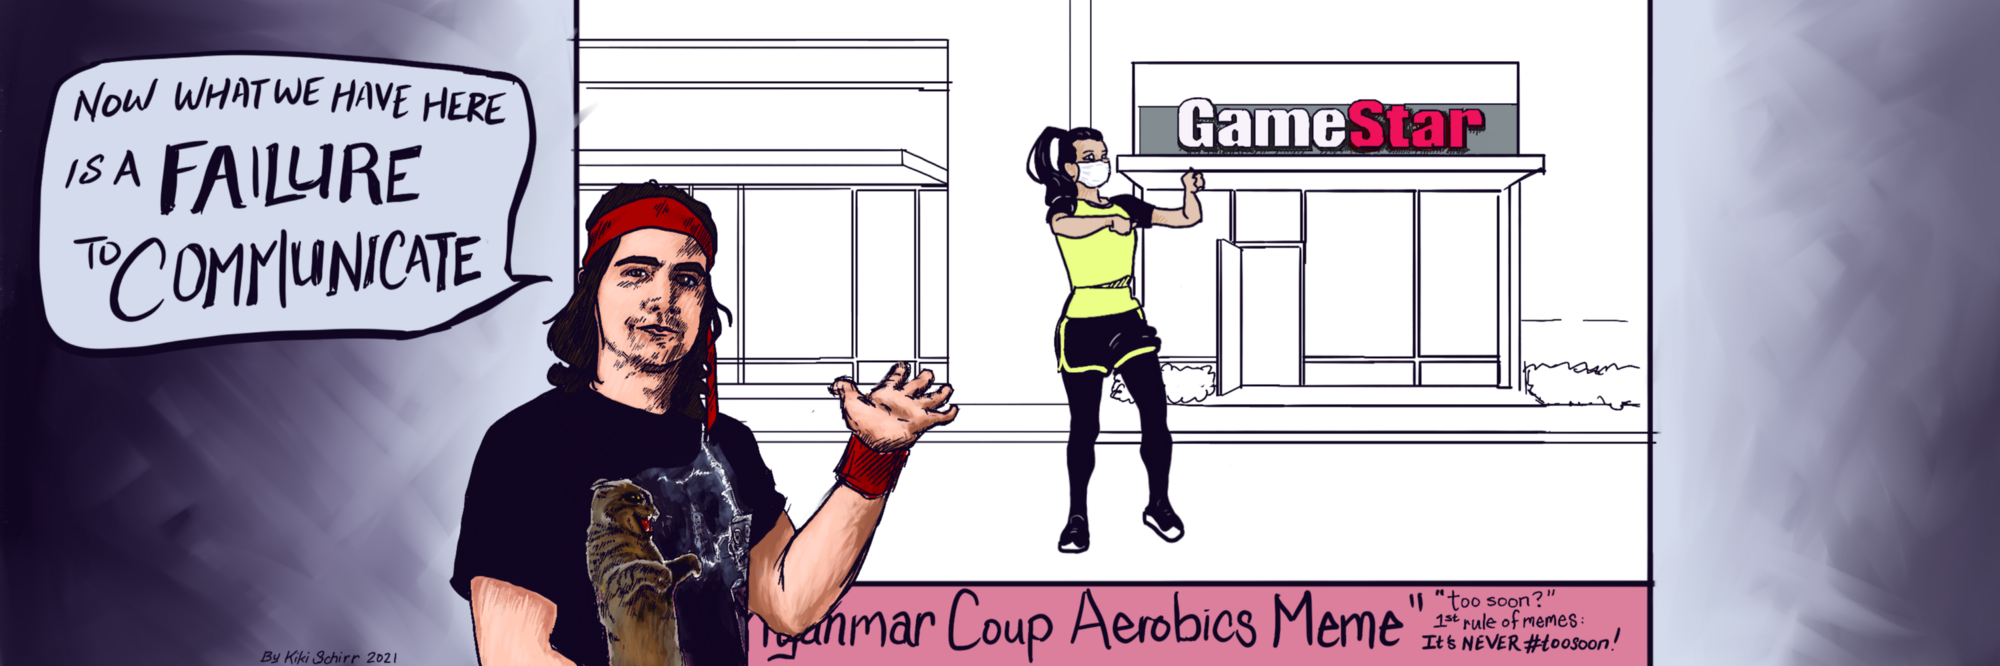 A Financial Meme Trends Analyst gives a presentation explaining the Myanmar Coup Aerobics Meme about GameStop shorts